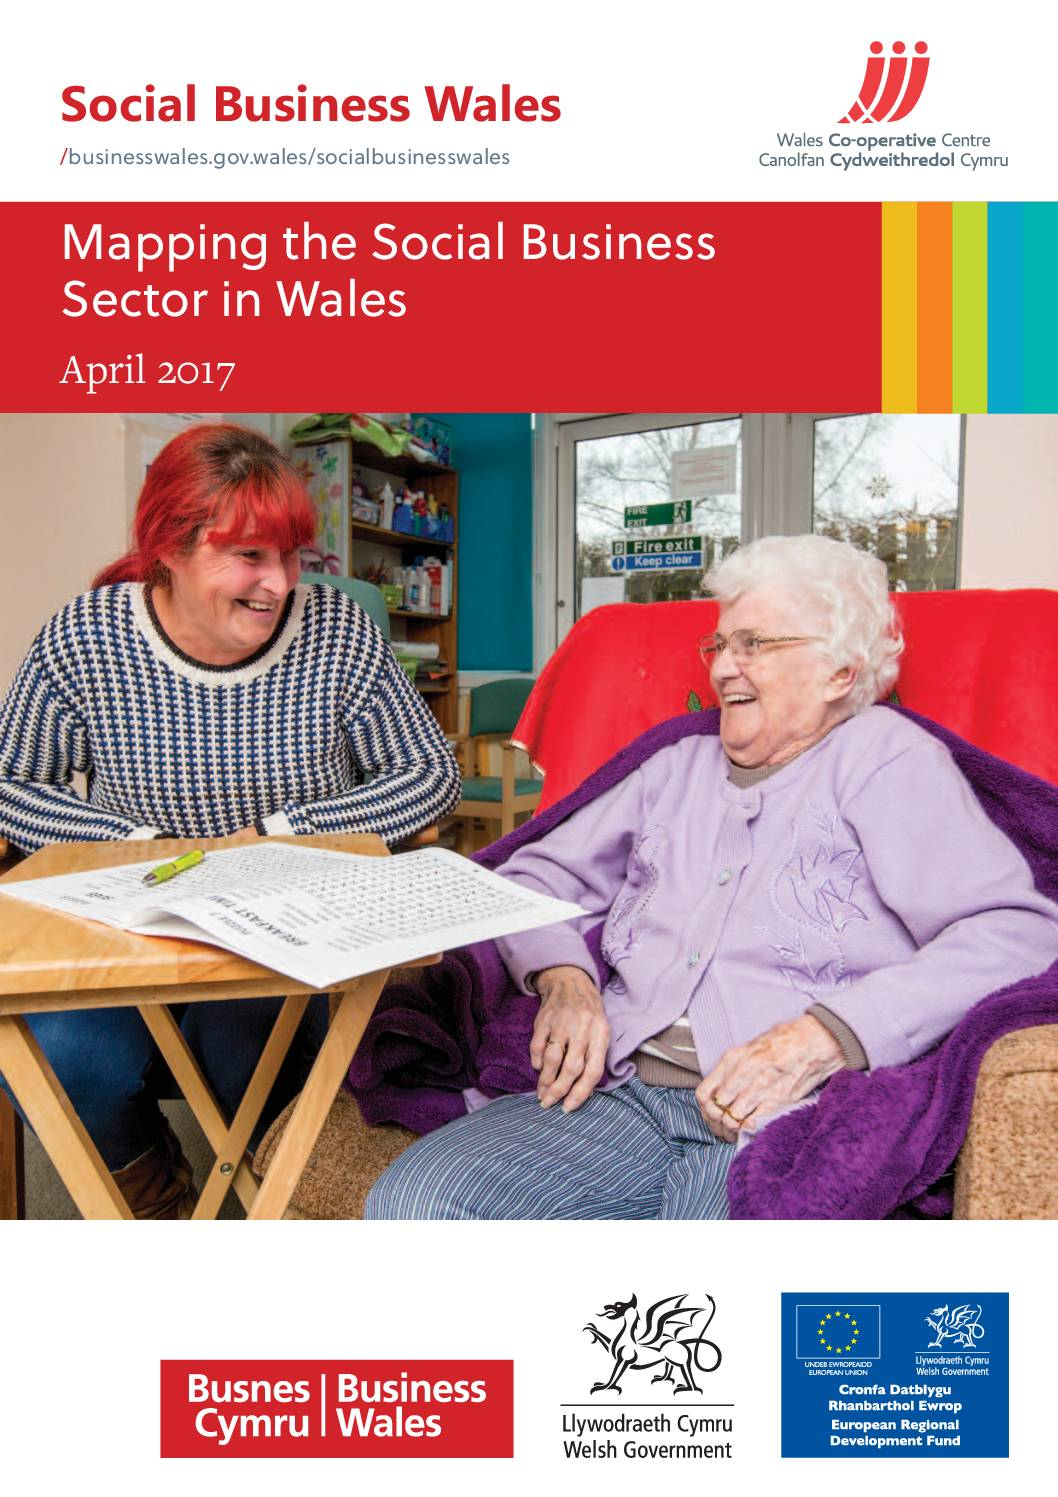 Mapping the Social Business Sector in Wales